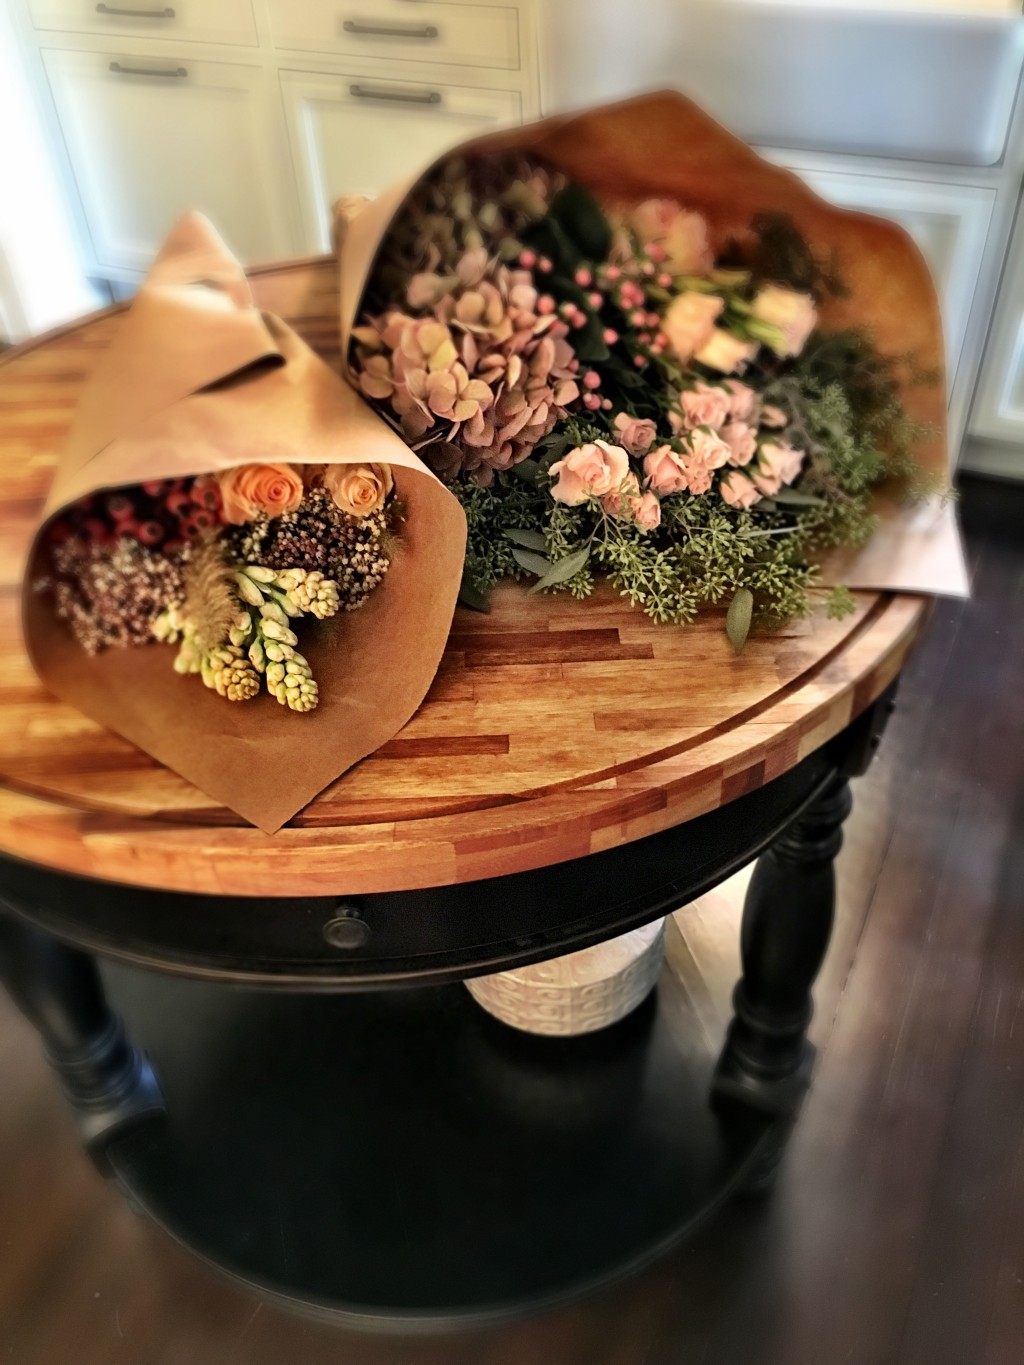 Gorgeous paper wrapped flowers from my local florist.